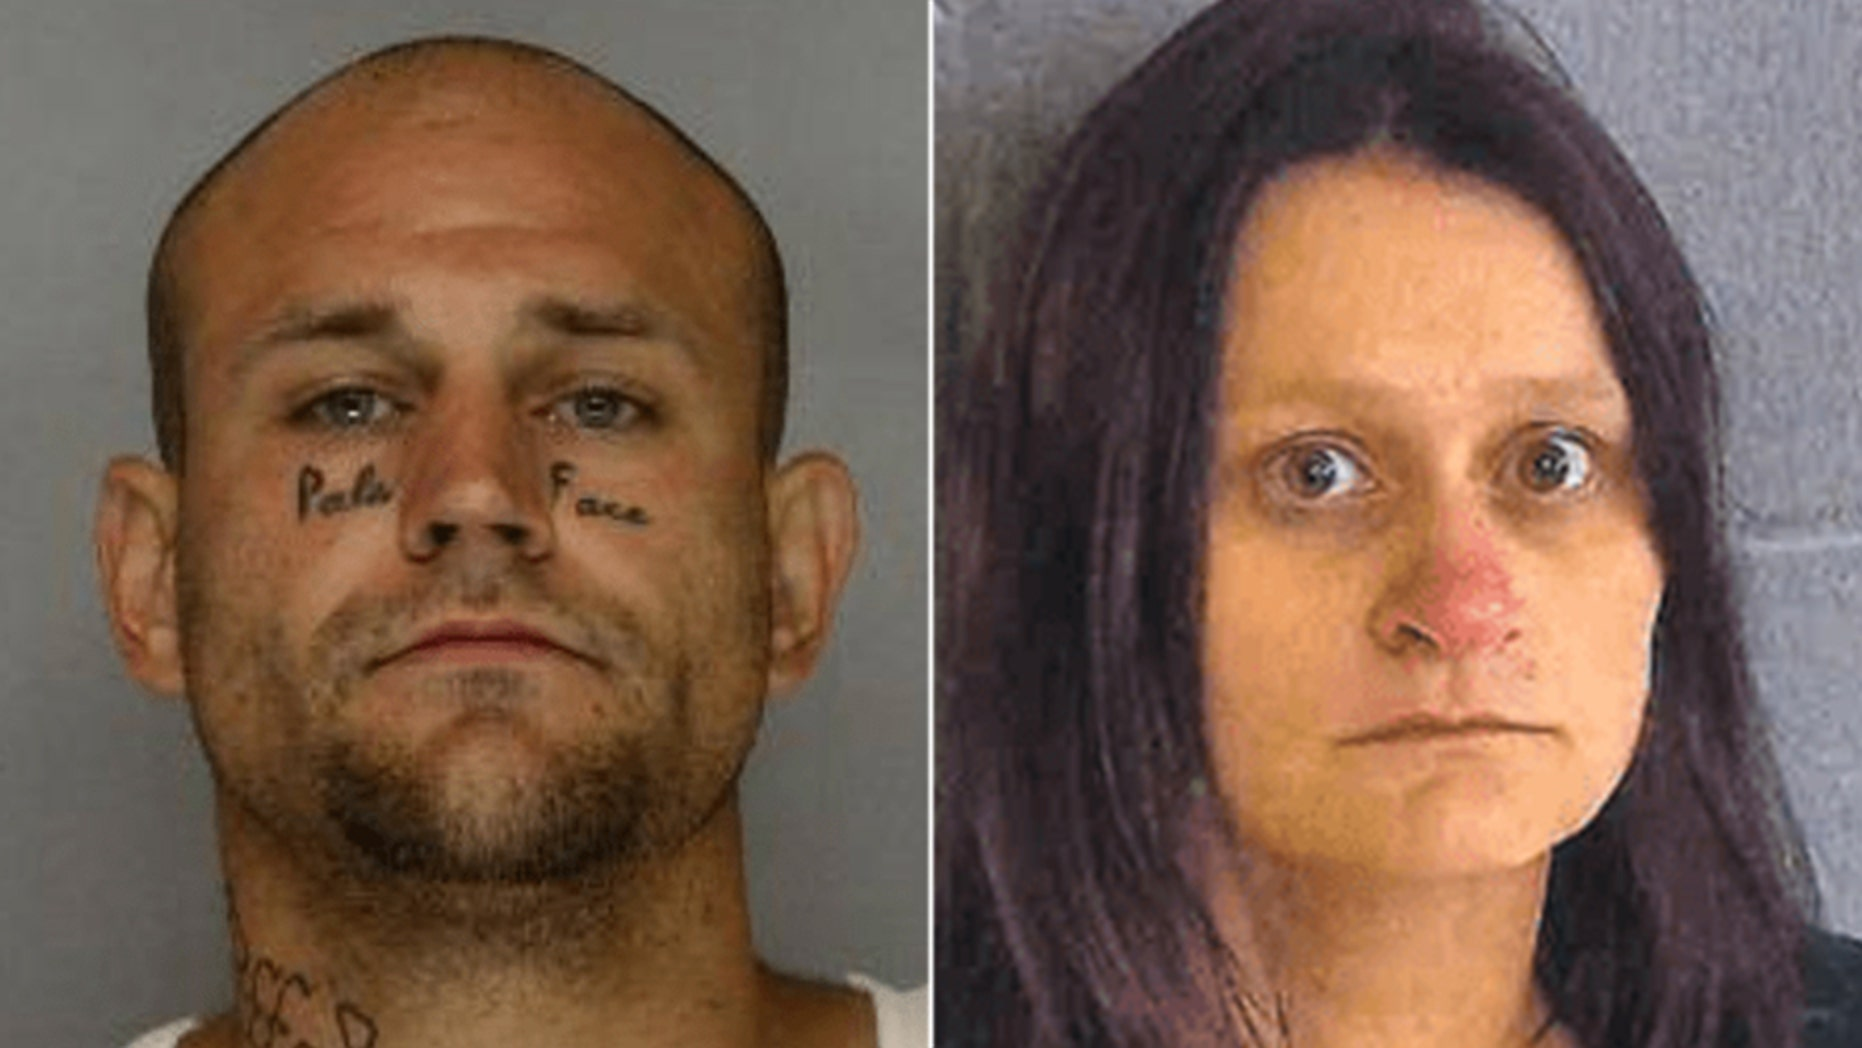 James Mathis, left, and Amanda Gail Oakes, right, are both being held on a $15,000 bond.